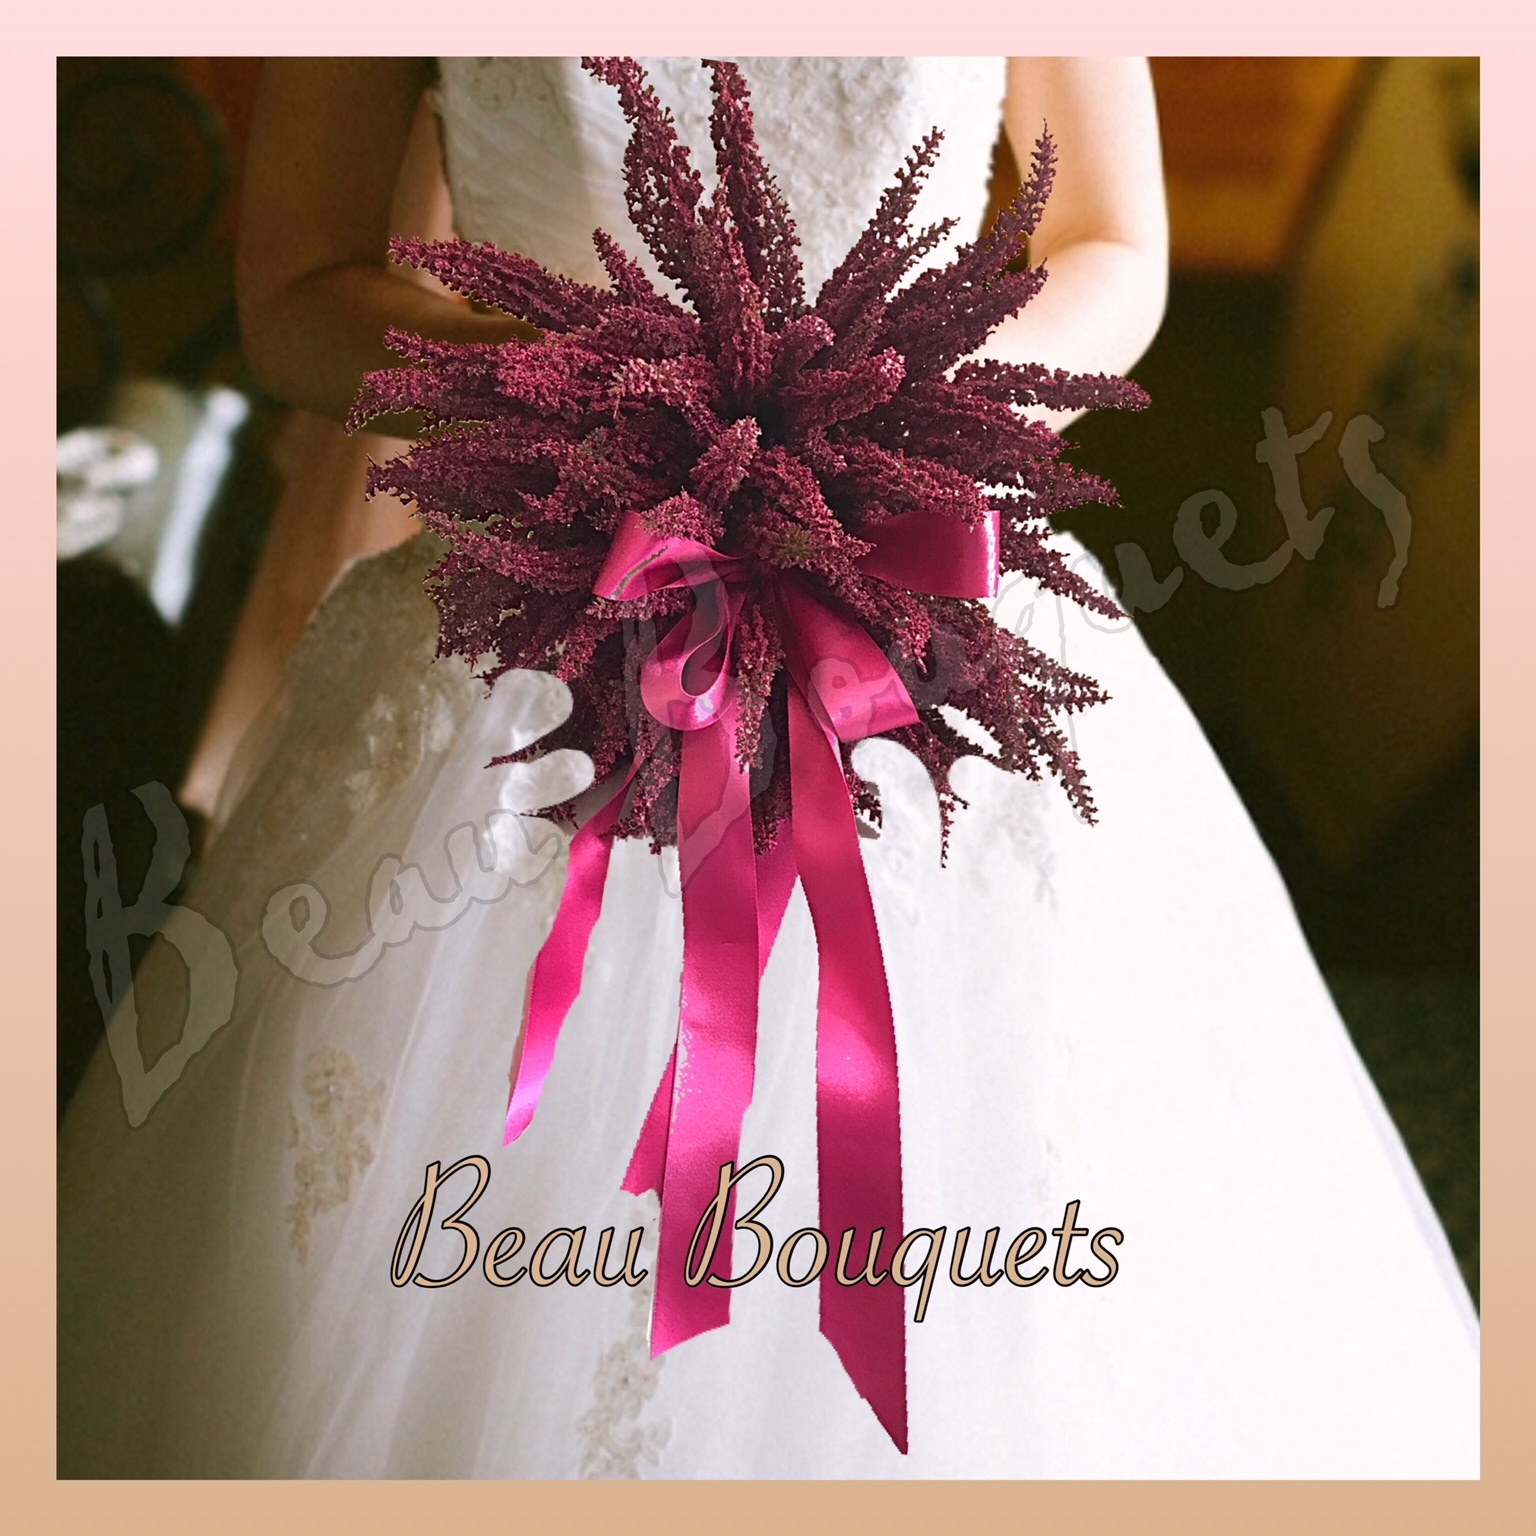 TWO BECOMES ONE- SPRAY  BRIDE BOUQUET Bride bouquet with throwing bouquet created into one splttable bouquet with premium fuschia heather & wide satin ribbon bow